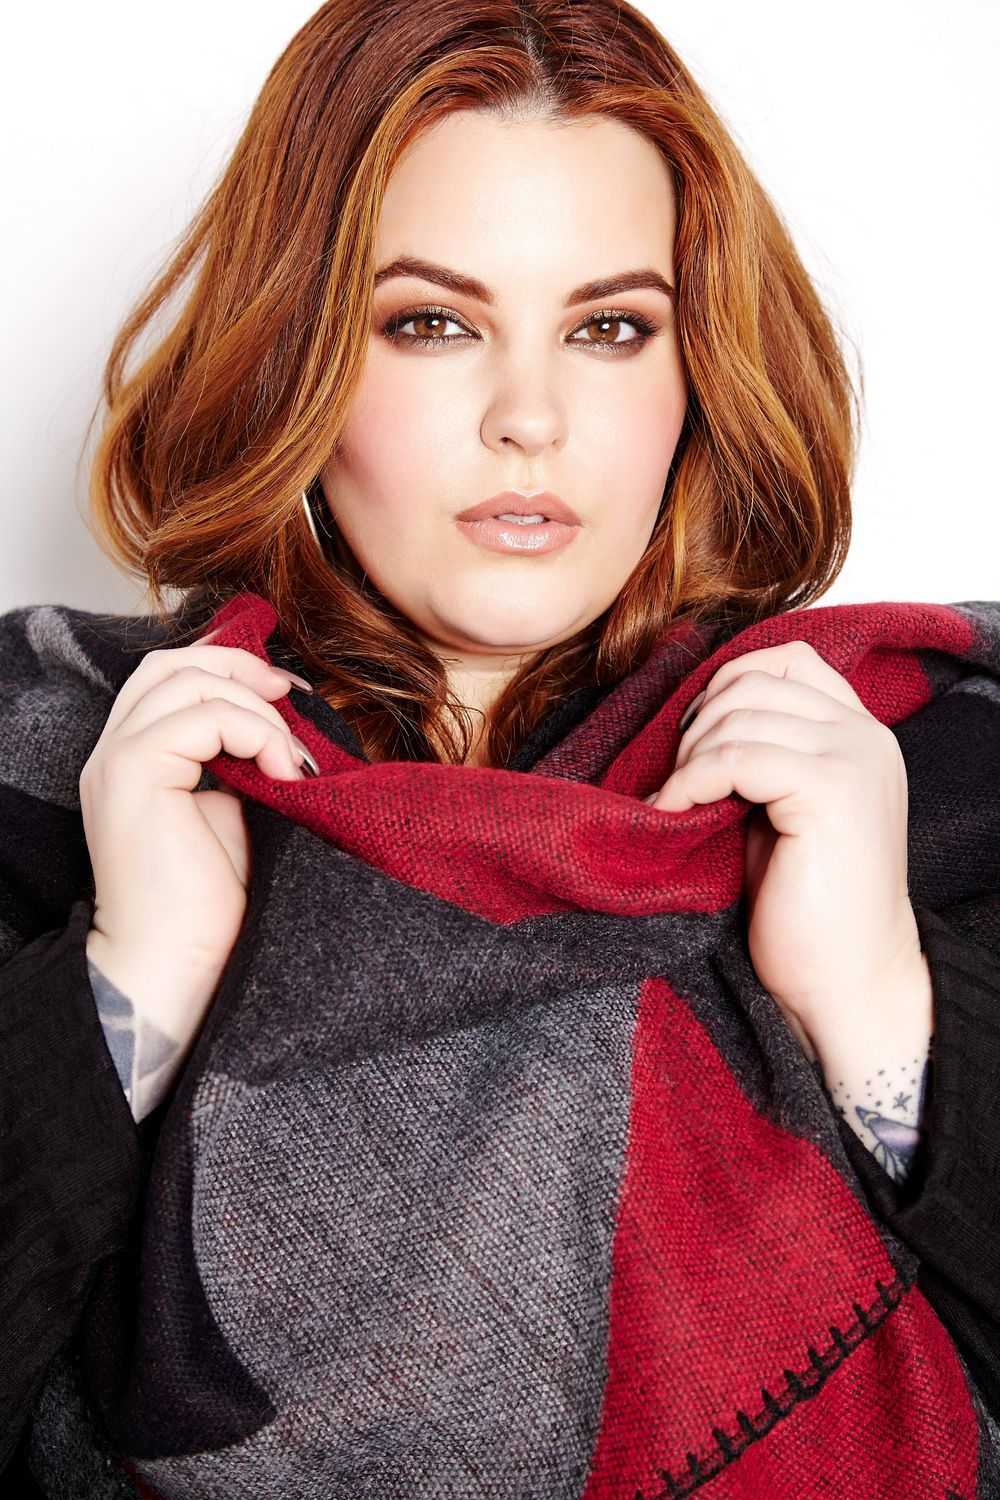 The Curvy Fashionista | The Addition Elle Fall Look Book featuring Tess Holliday